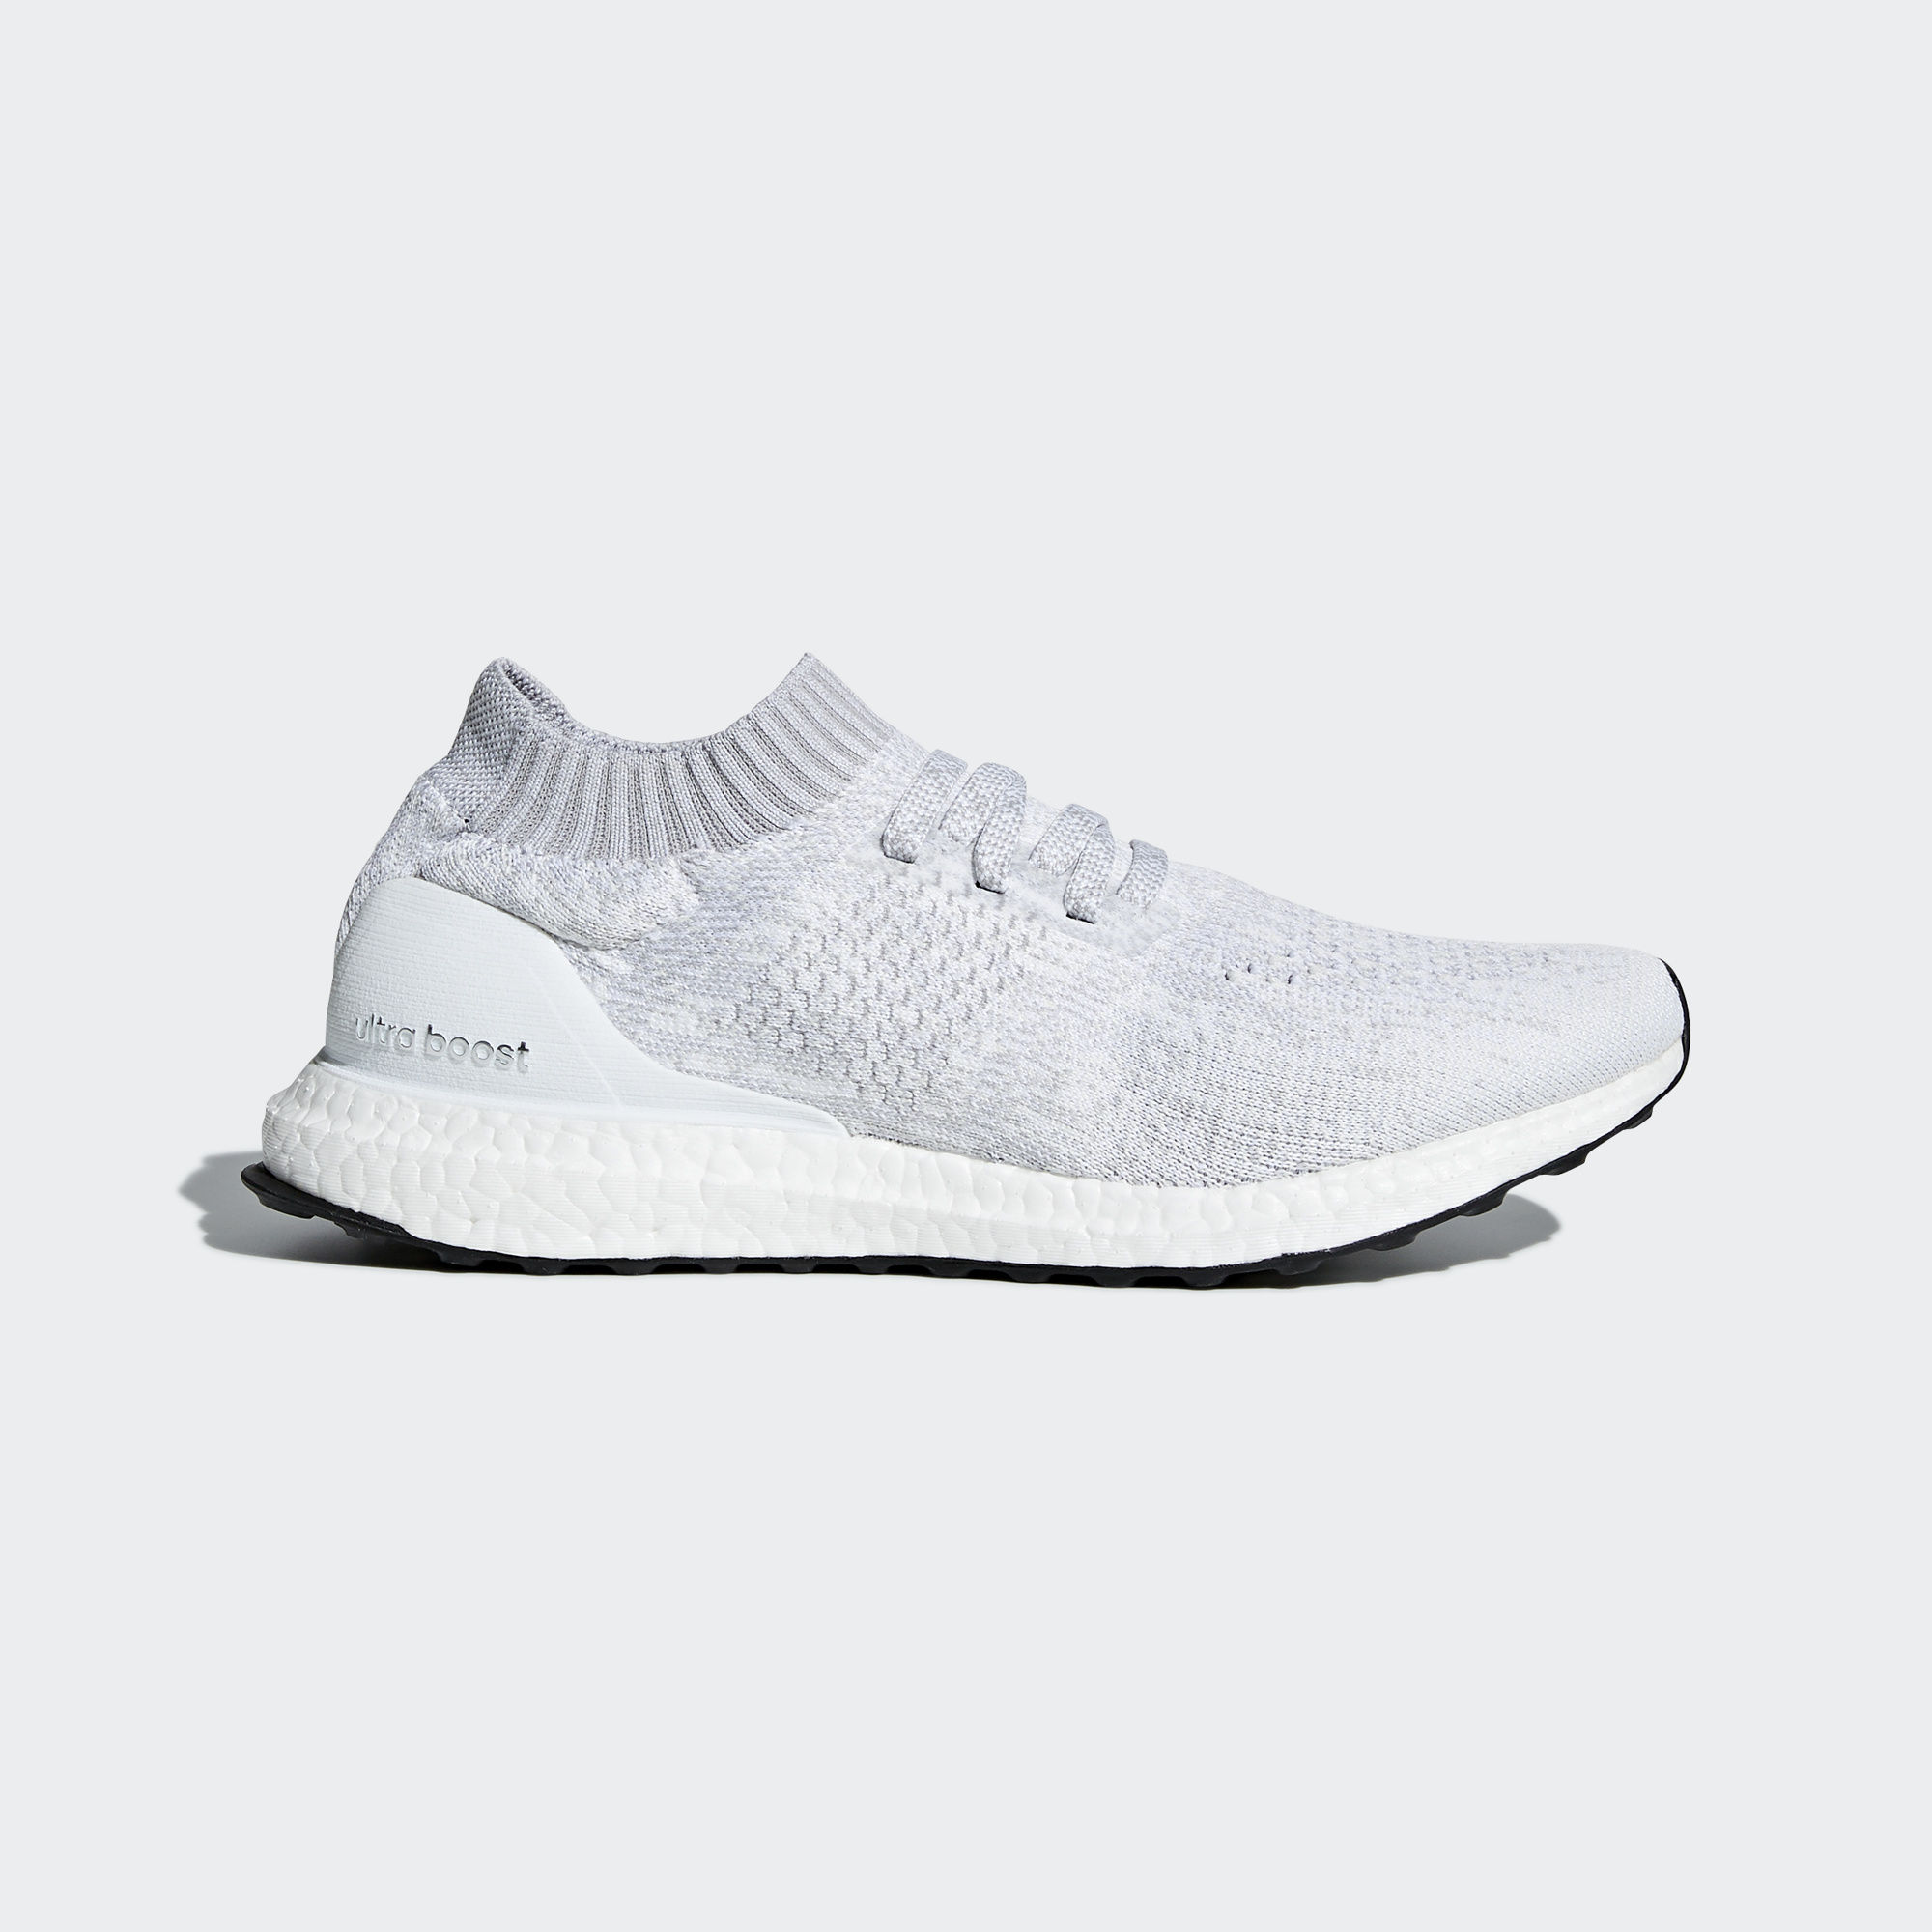 adidas Ultra Boost White | Adidas shoes, Adidas, Mens